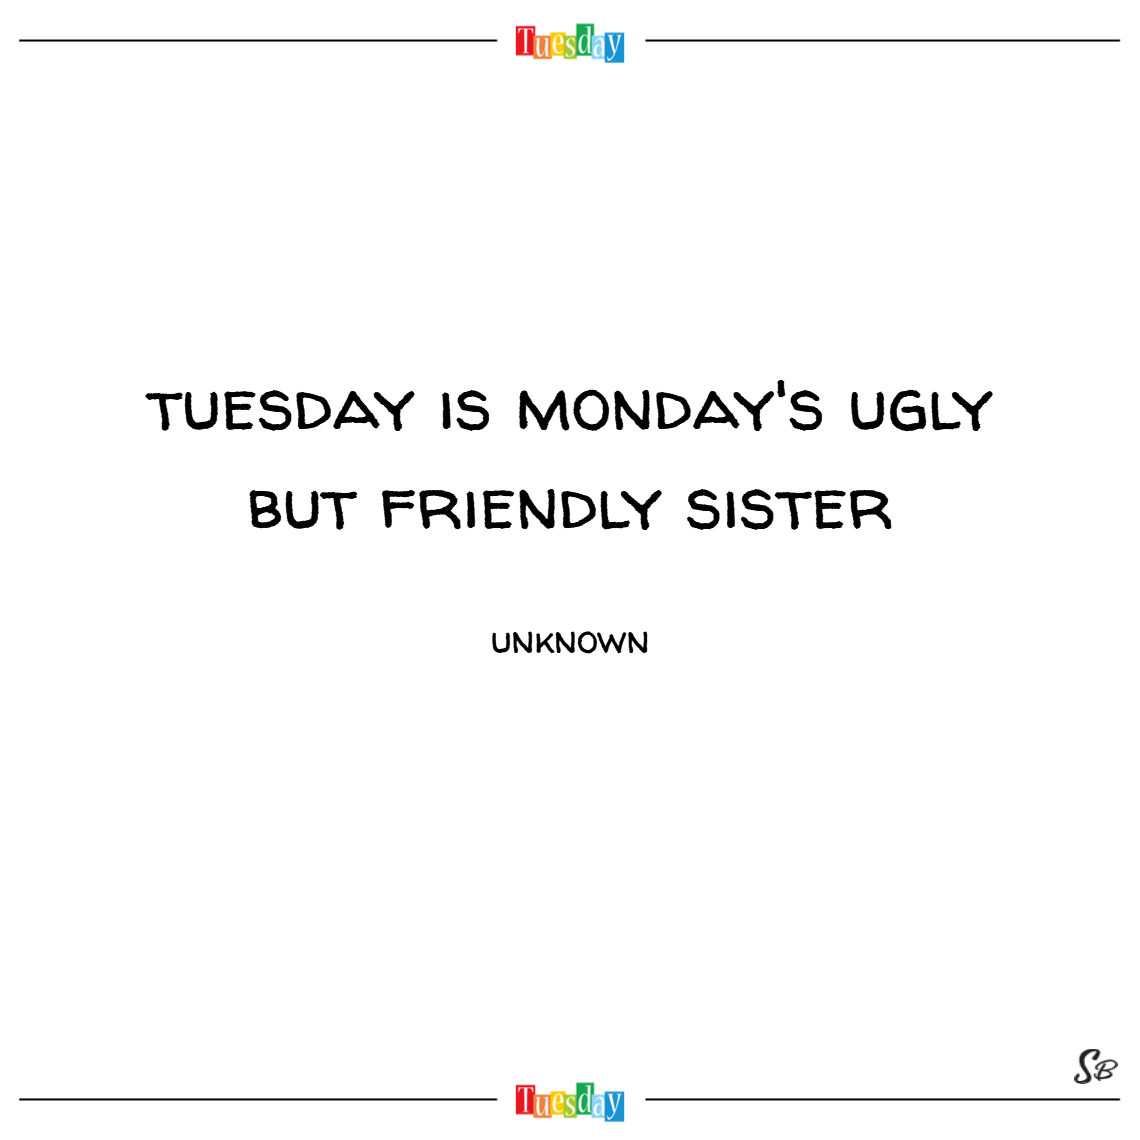 Tuesday is monday's ugly and friendlier sister. – unknown